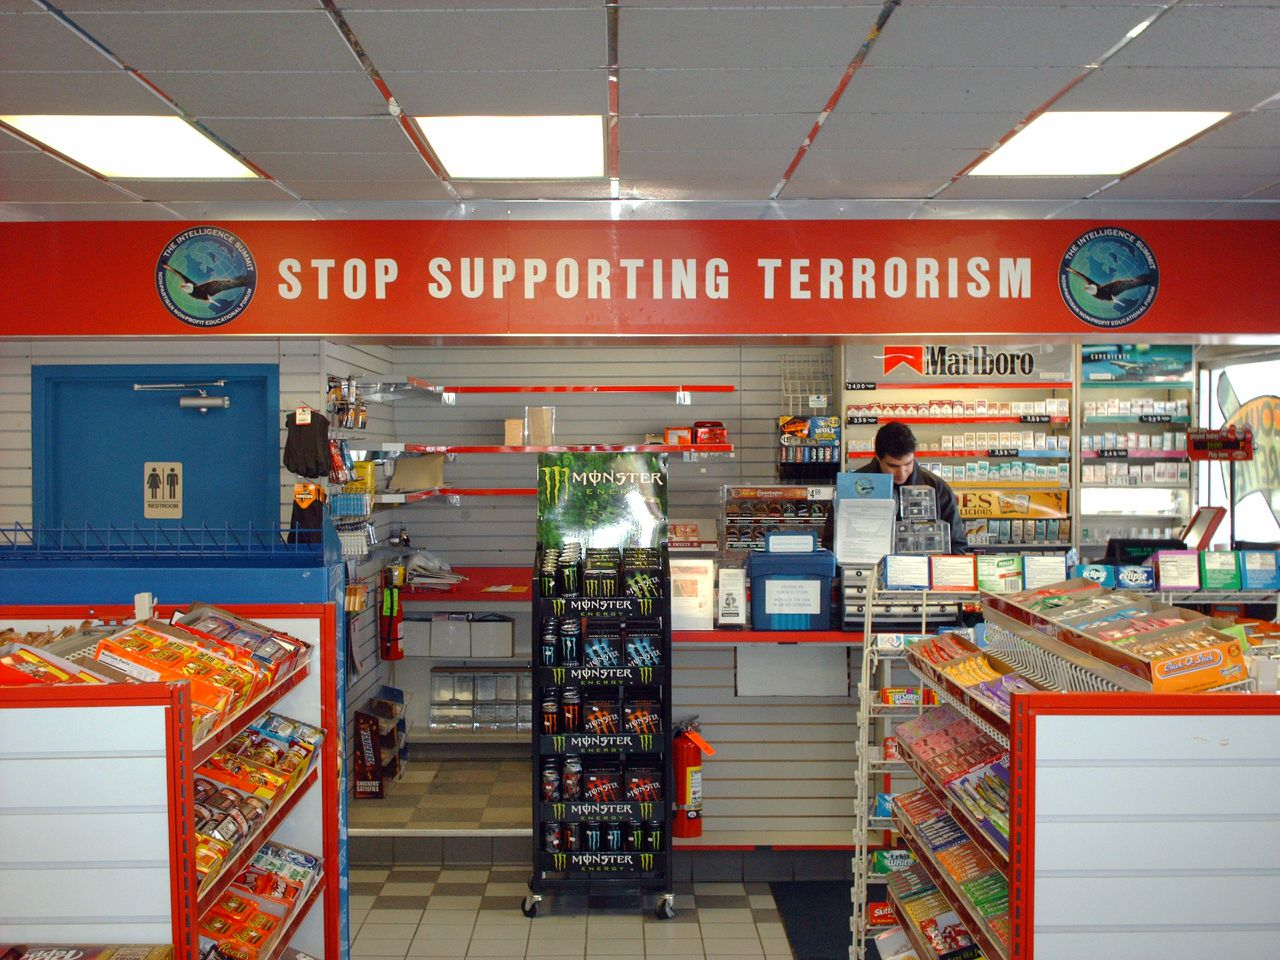 """Amerikanen willen kunnen tanken in de wetenschap dat hun geld niet in het Midden-Oosten terechtkomt. Foto AFP TO GO WITH AFP STORY AFPLIFESTYLE-US-MIDEAST-OIL-PROTEST This undated handout photo received 15 February 2007 show a """"terror-free oil"""" sign inside a gas station convenience store in Ohama, Nebraska. The first """"terror-free"""" gas station was inaugurated this week in the central US state of Nebraska with the aim of sending a message to Middle Eastern countries thought to sponsor terrorism. The station in the city of Omaha greets customers with large """"terror-free"""" signs and the pumps proudly proclaim that the oil being drawn is """"terror-free premium"""" or """"terror-free super"""". Messages are also plastered inside the convenience store at the station and at other locations to drive home the message that the station only uses oil from Canada and the United States and supports the war on terror. AFP PHOTO/TERROR-FREE OIL/HO/=GETTY OUT="""